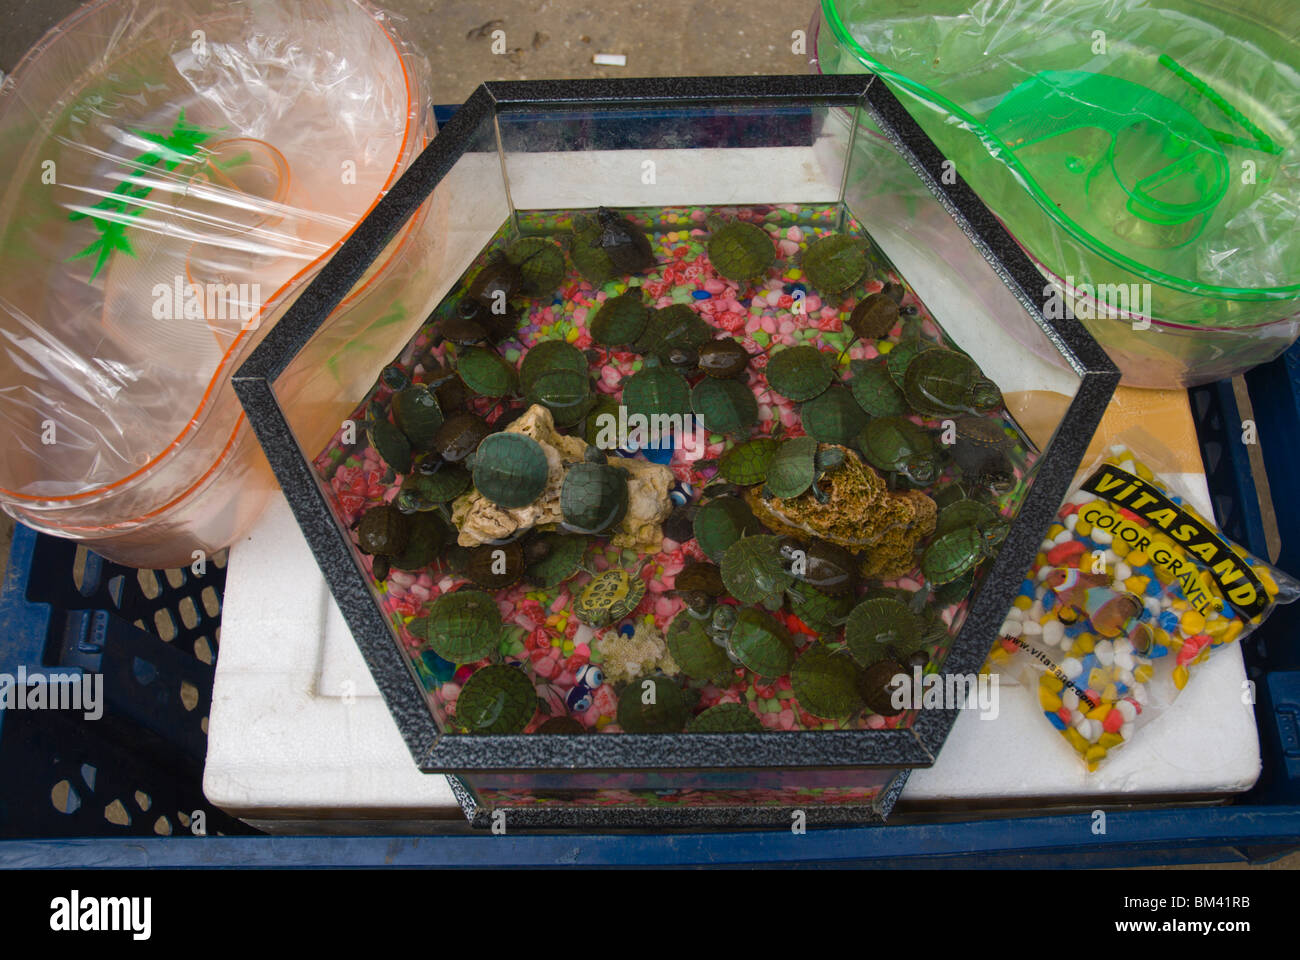 Baby Turtles For Sale At Spice Bazaar Market In